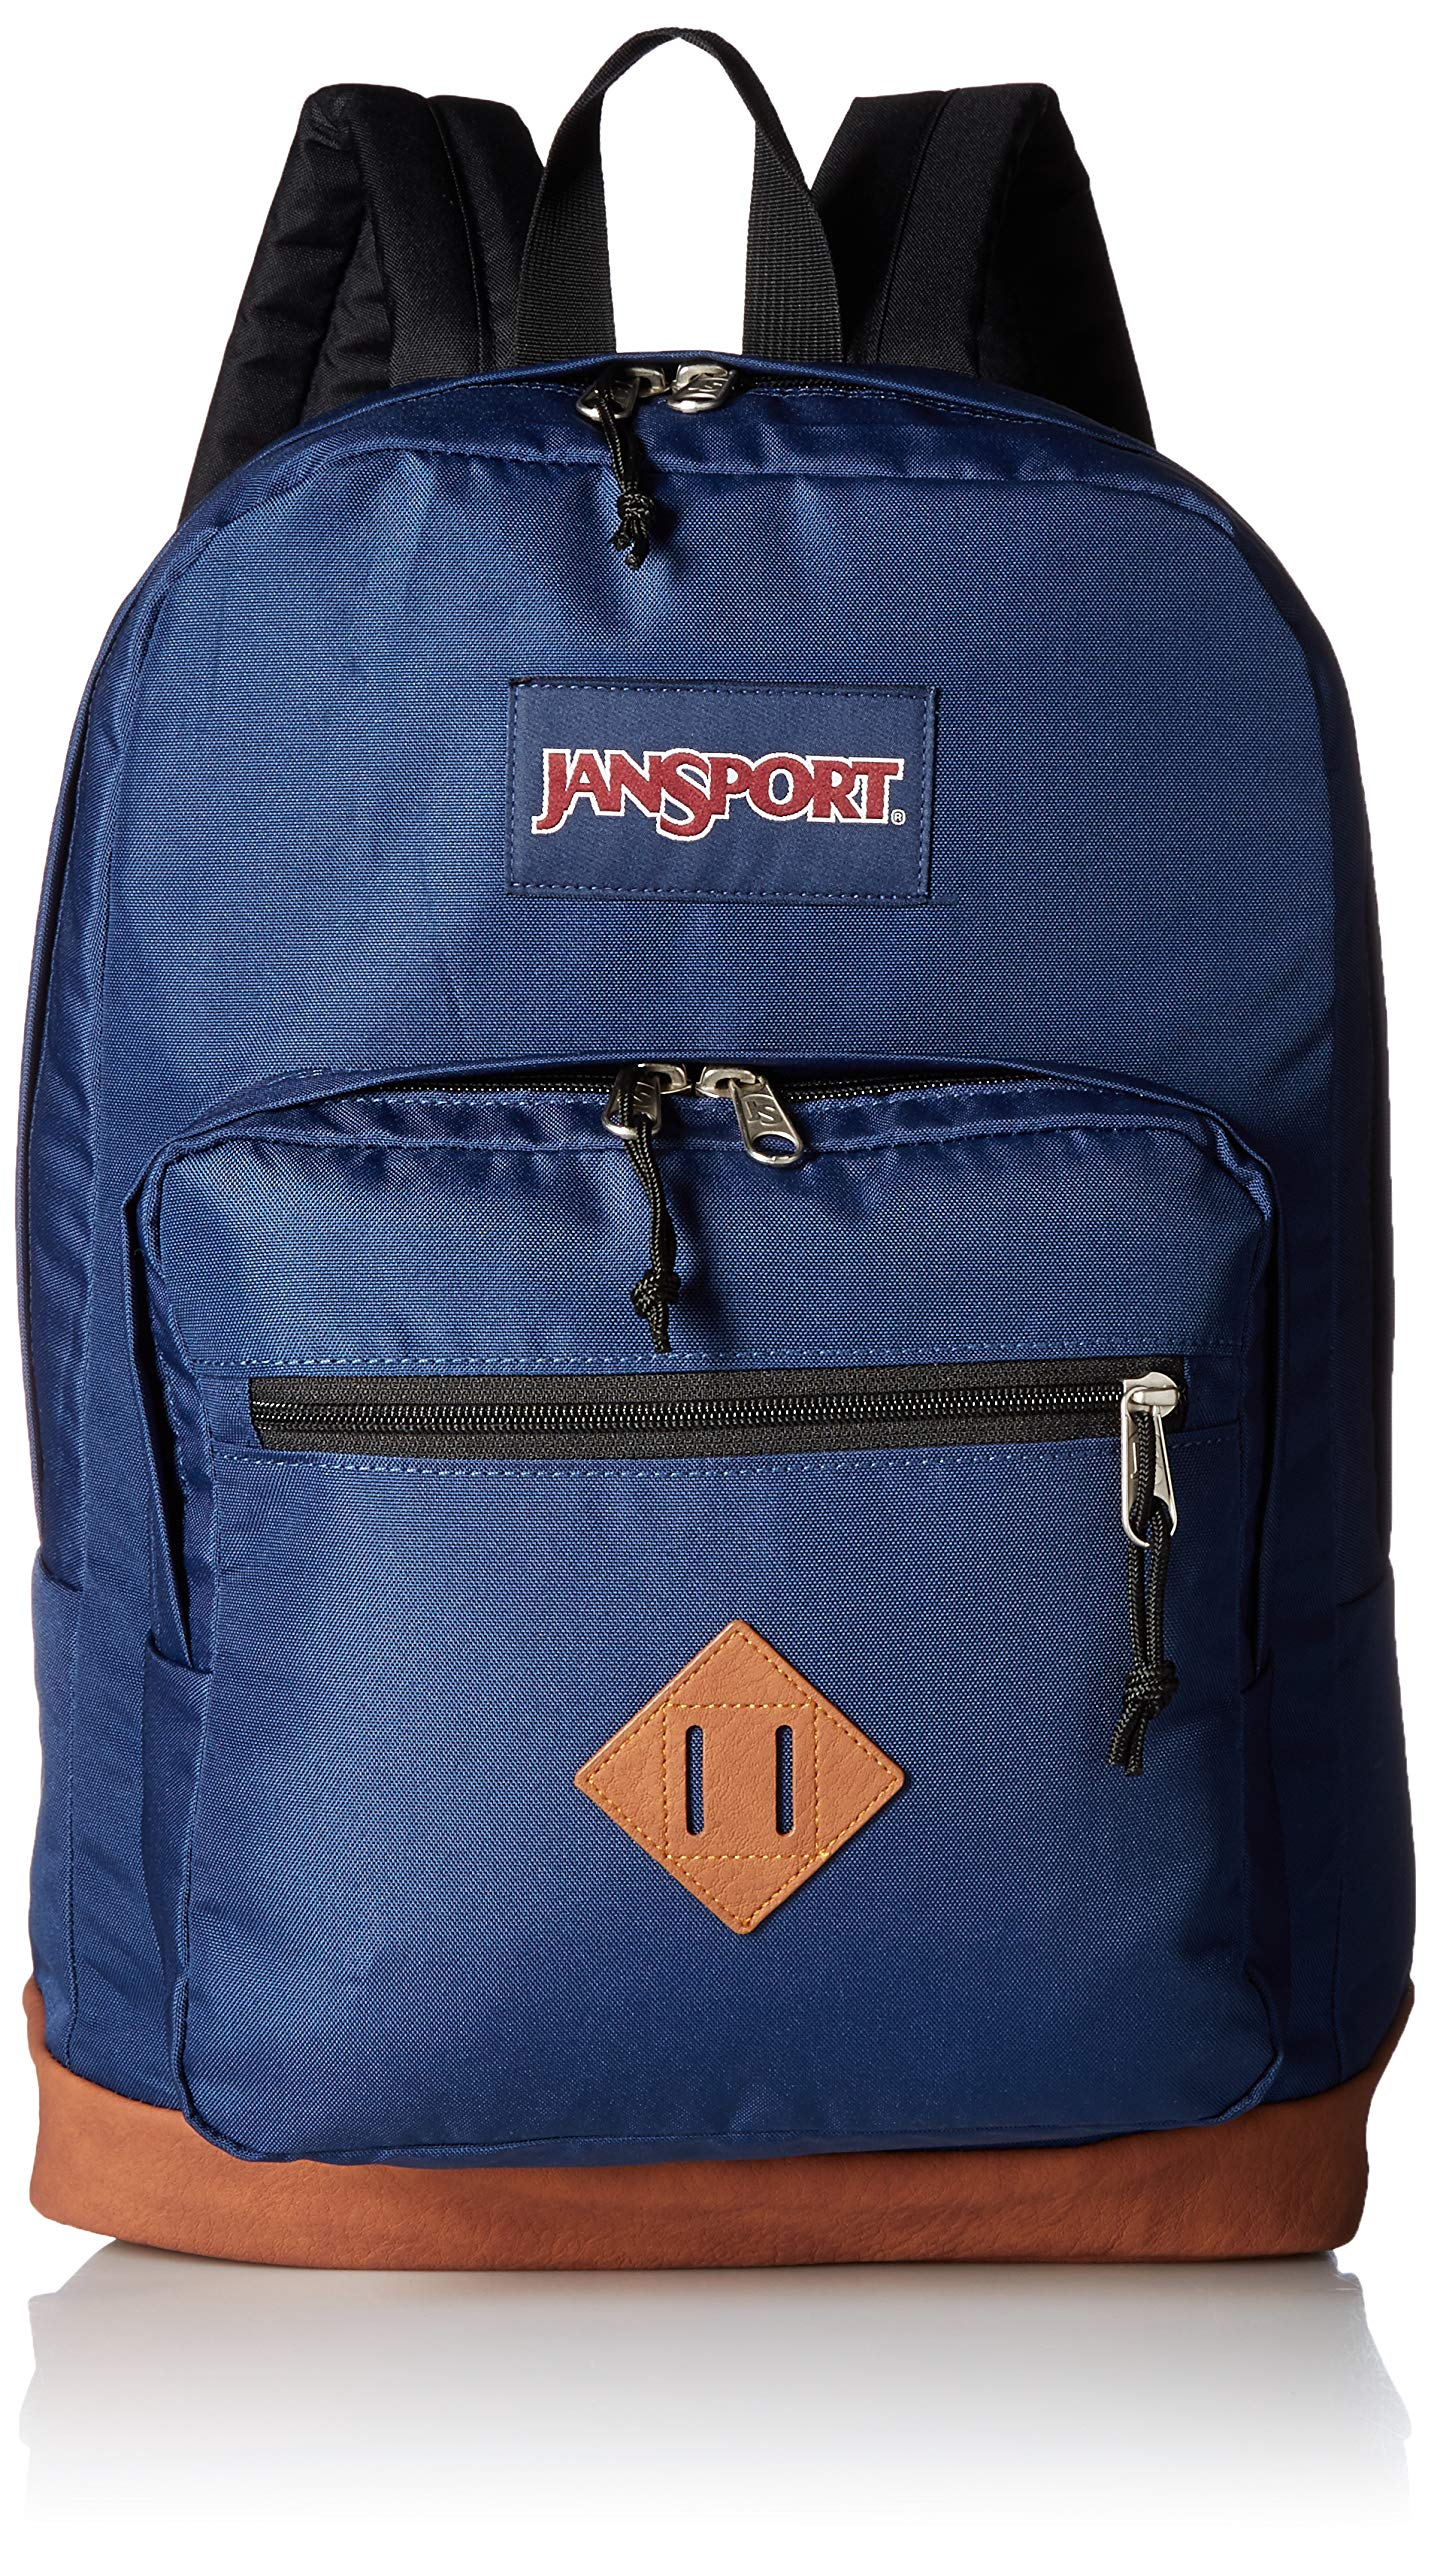 JanSport City View Backpack - 15-inch Laptop School Pack, Navy by JanSport